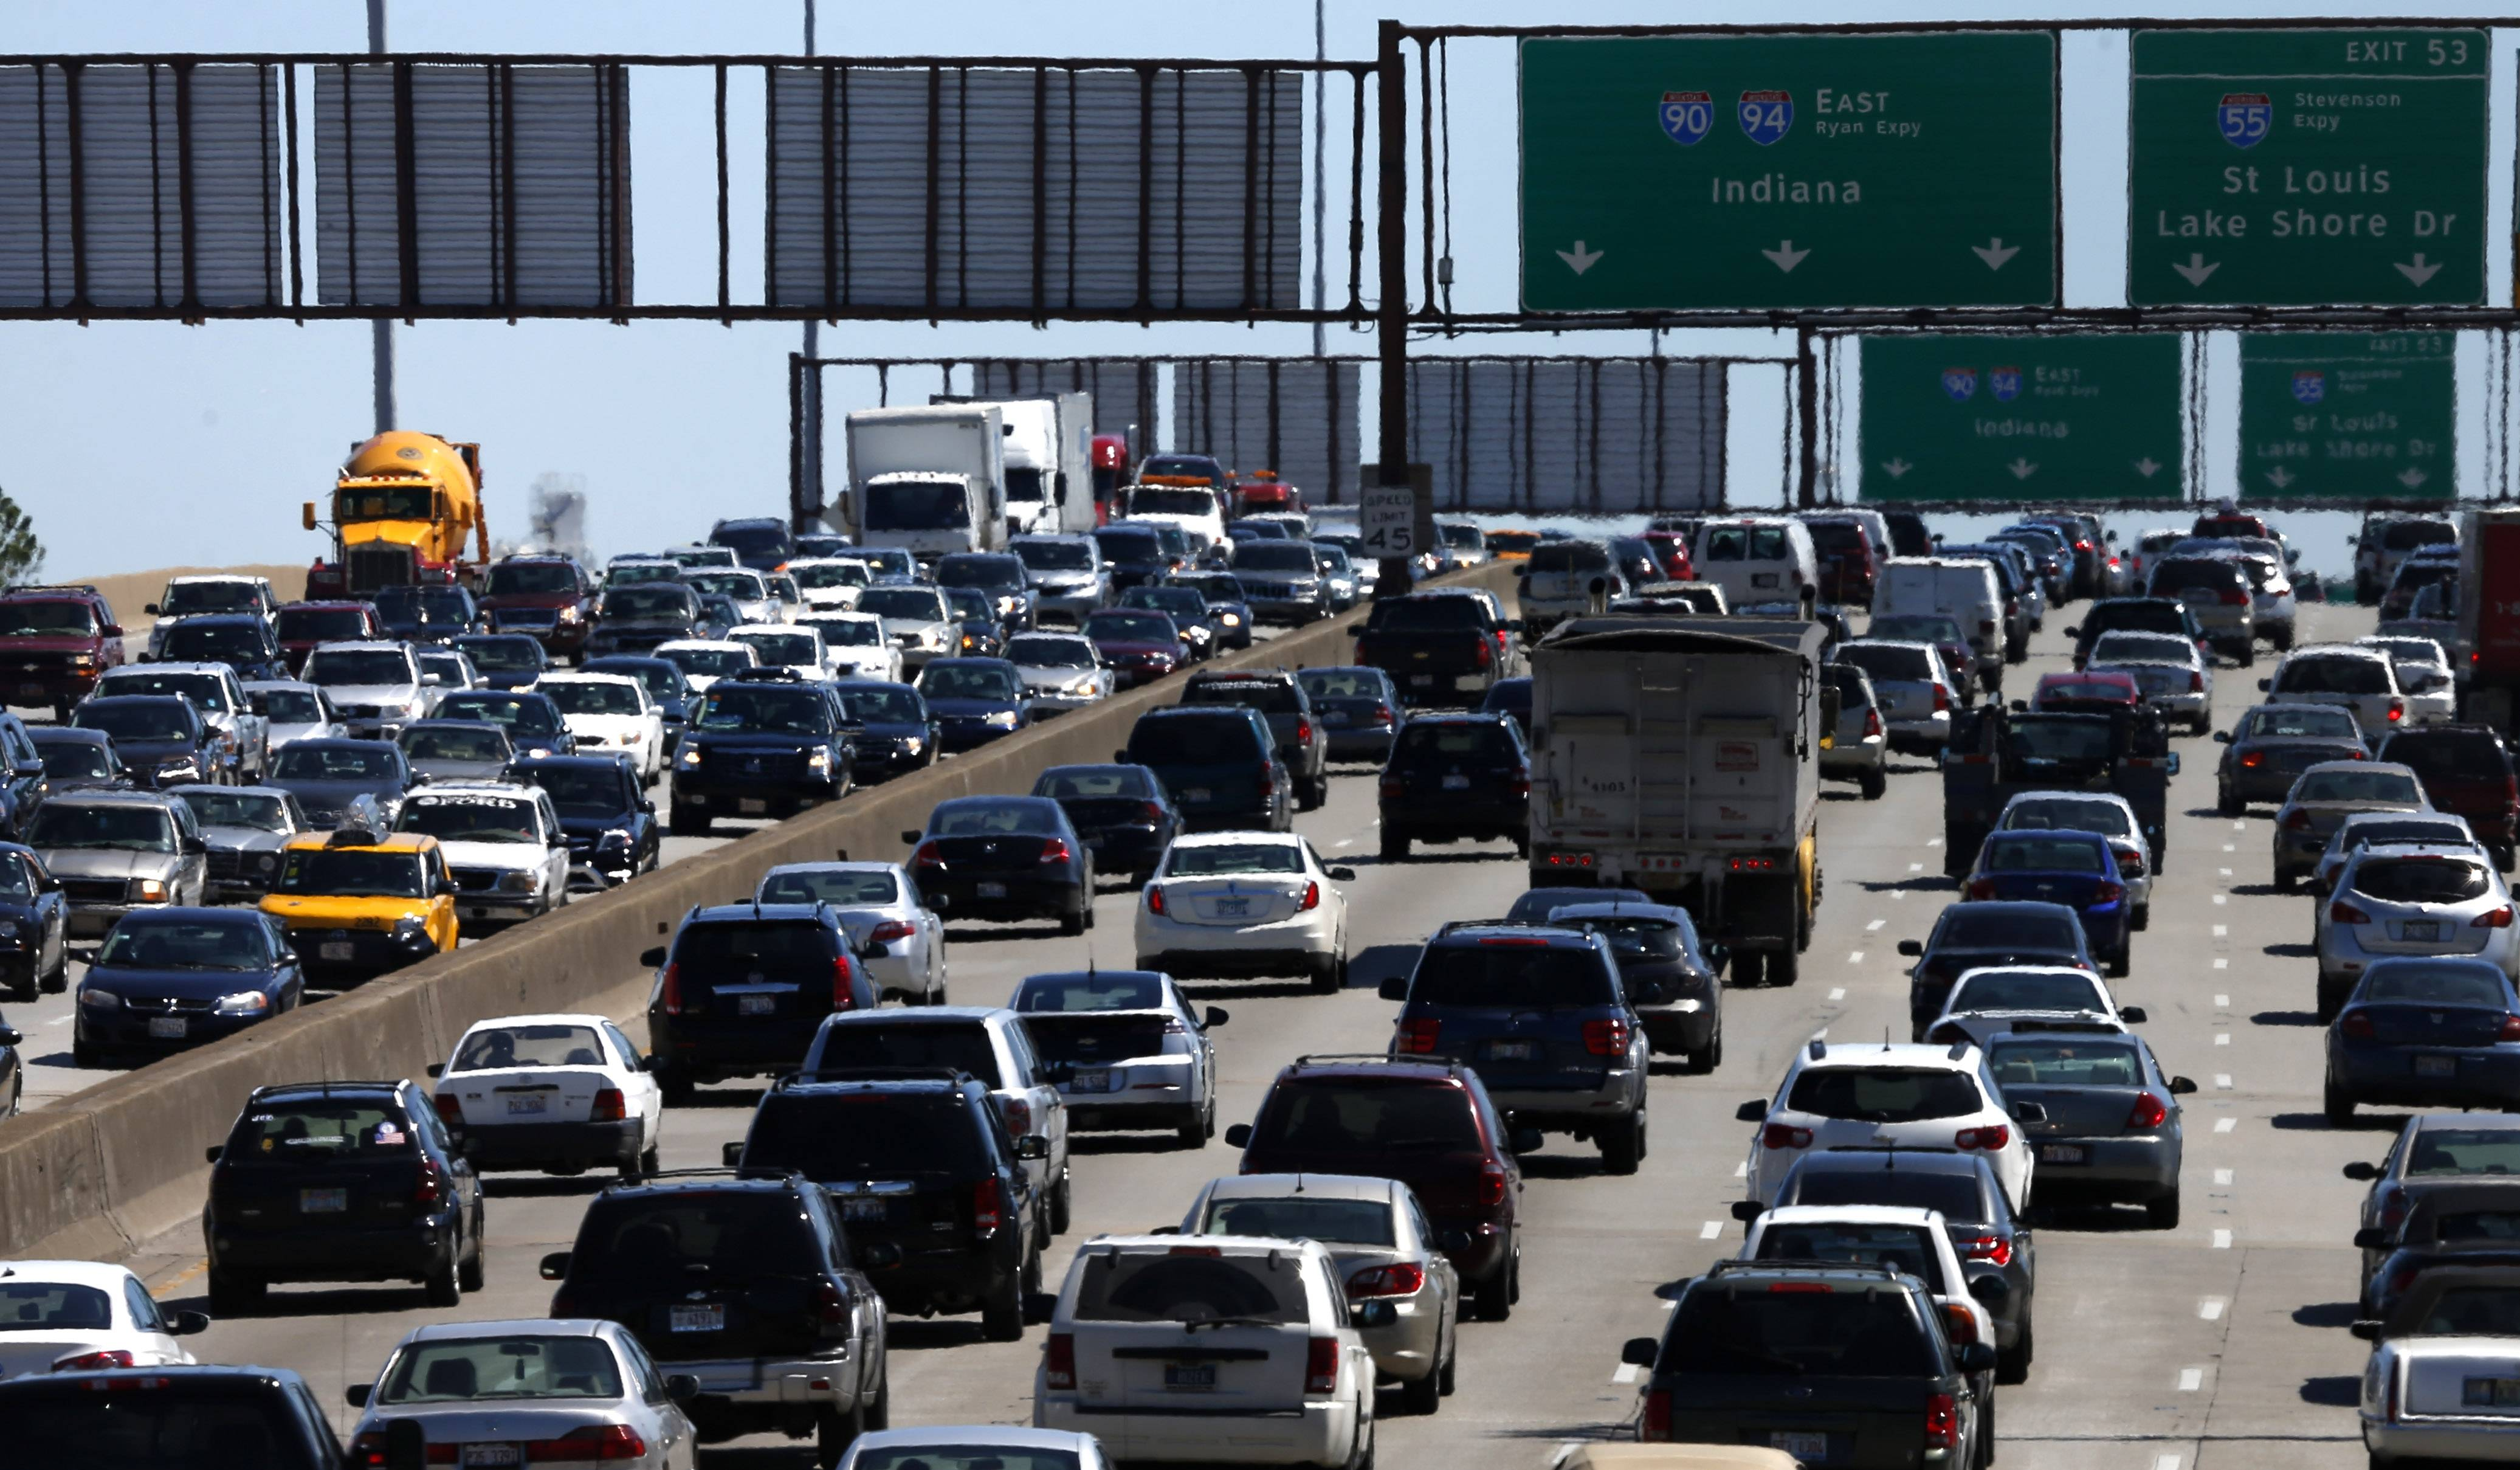 Auto club AAA said it expects a total of 36.1 million people to travel 50 miles or more this Memorial Day Weekend. If that estimate holds true, it would be the largest amount of people traveling during the holiday weekend since 2005.